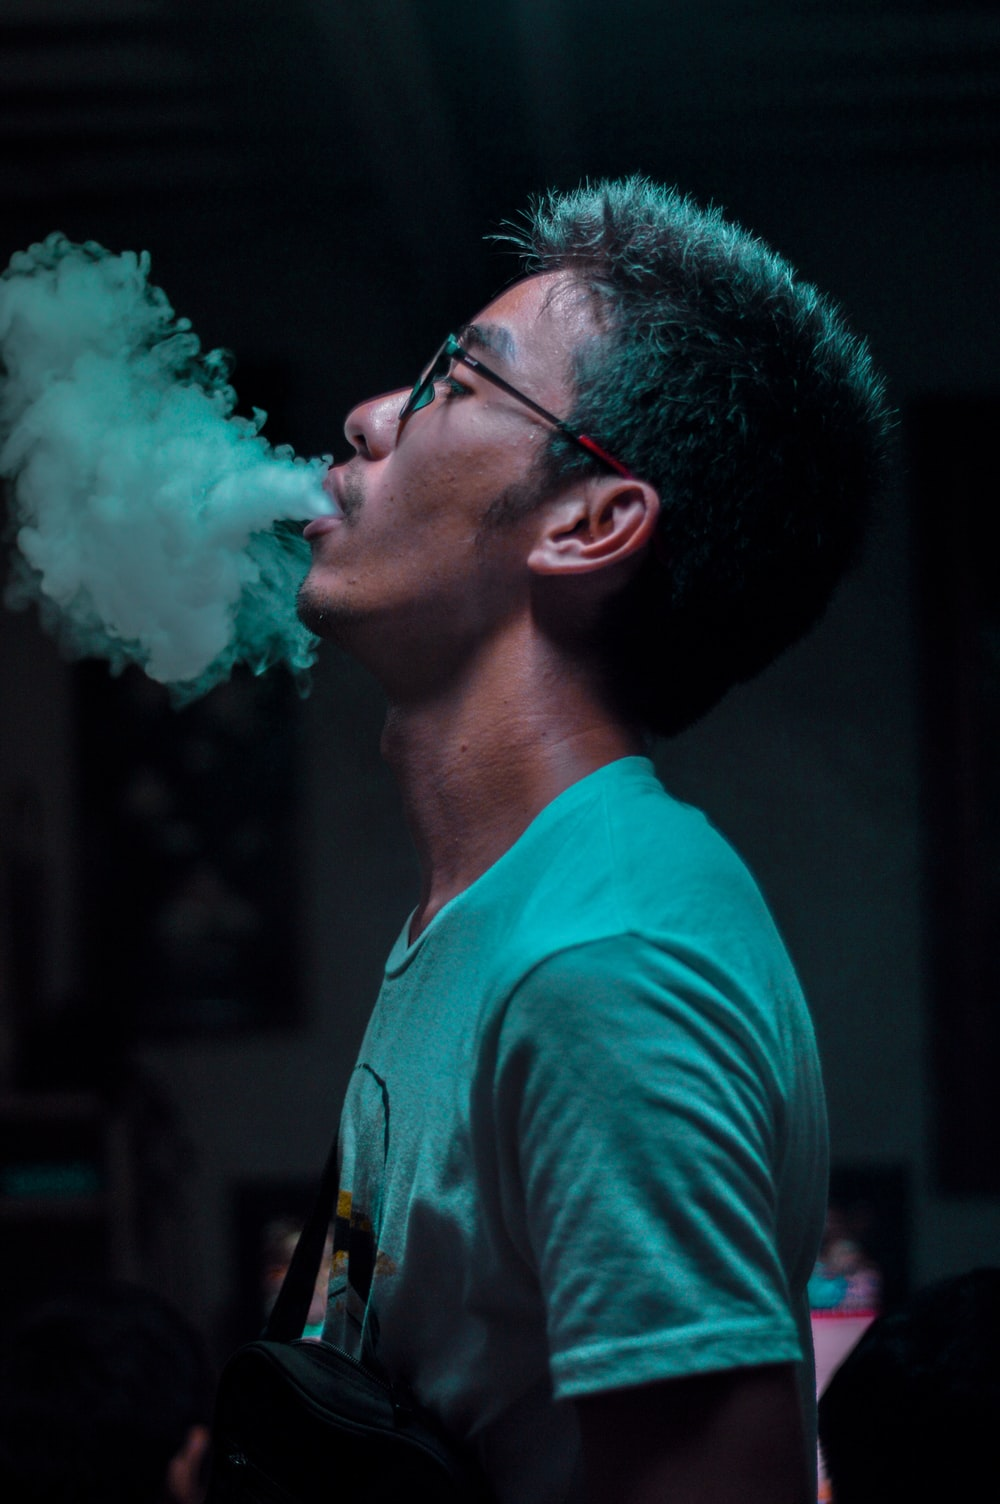 man in white shirt smoking